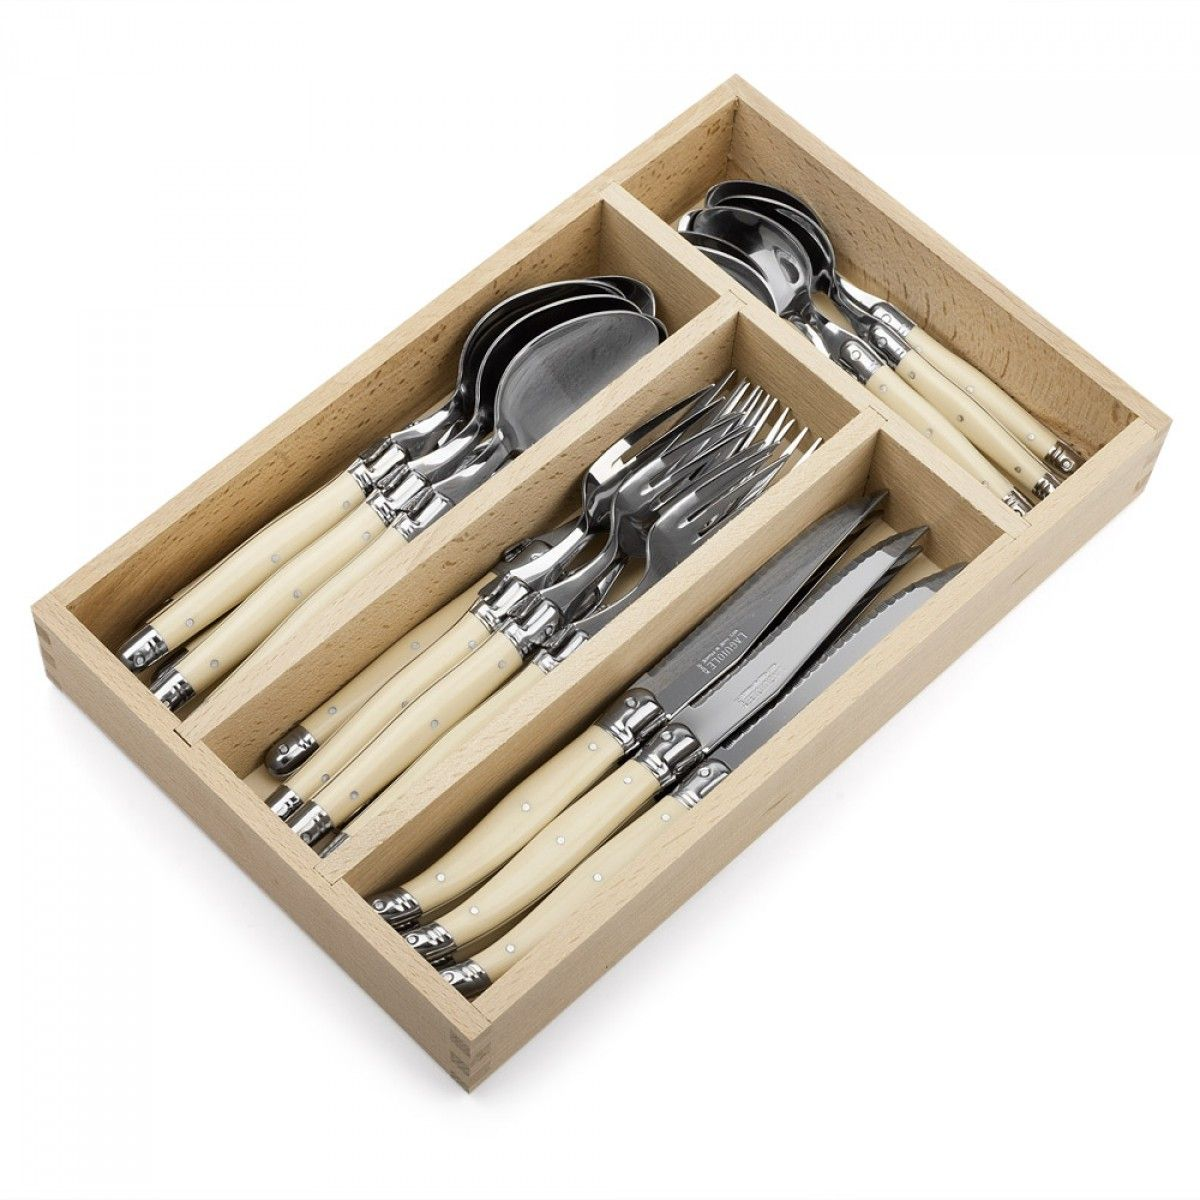 Laguiole Andre Verdier Debutant Polished Cutlery Set Ivory  - 24 Piece  For $160.95 | Kitchenware Superstore